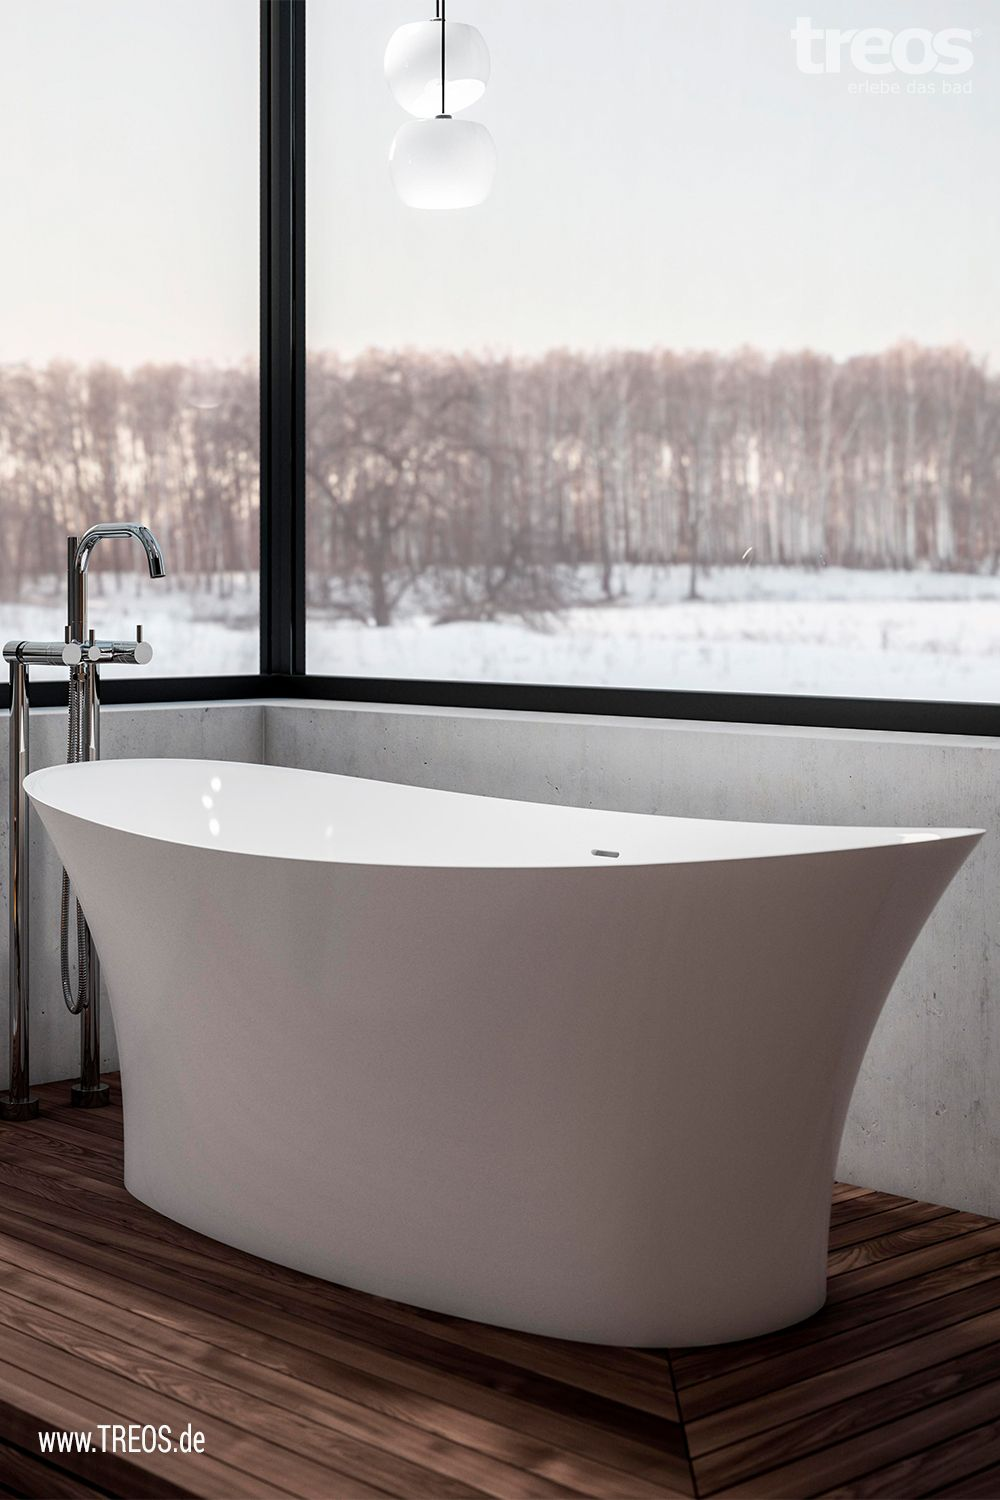 Find Your Dream Bathtub And Complete Your Bathroom According To Your Needs Discover Now The Different Styles Of In 2020 Style At Home Badewanne Freistehende Badewanne